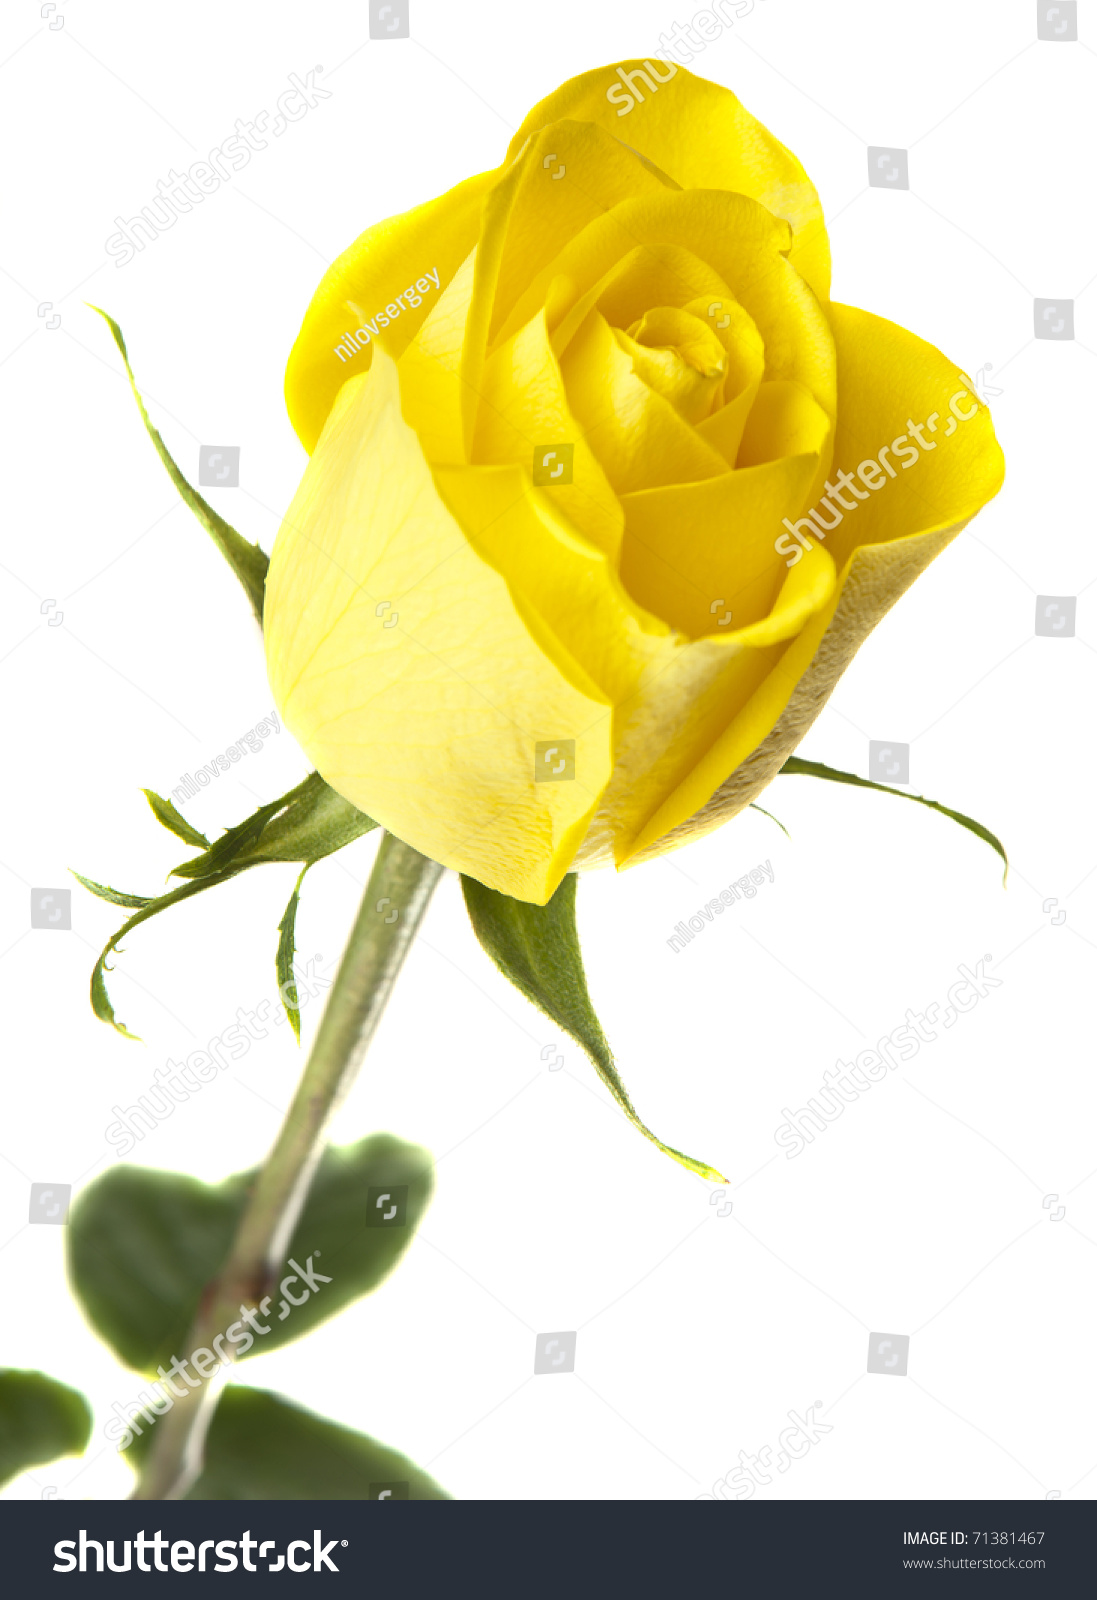 yellow rose on a white background isolated stock photo